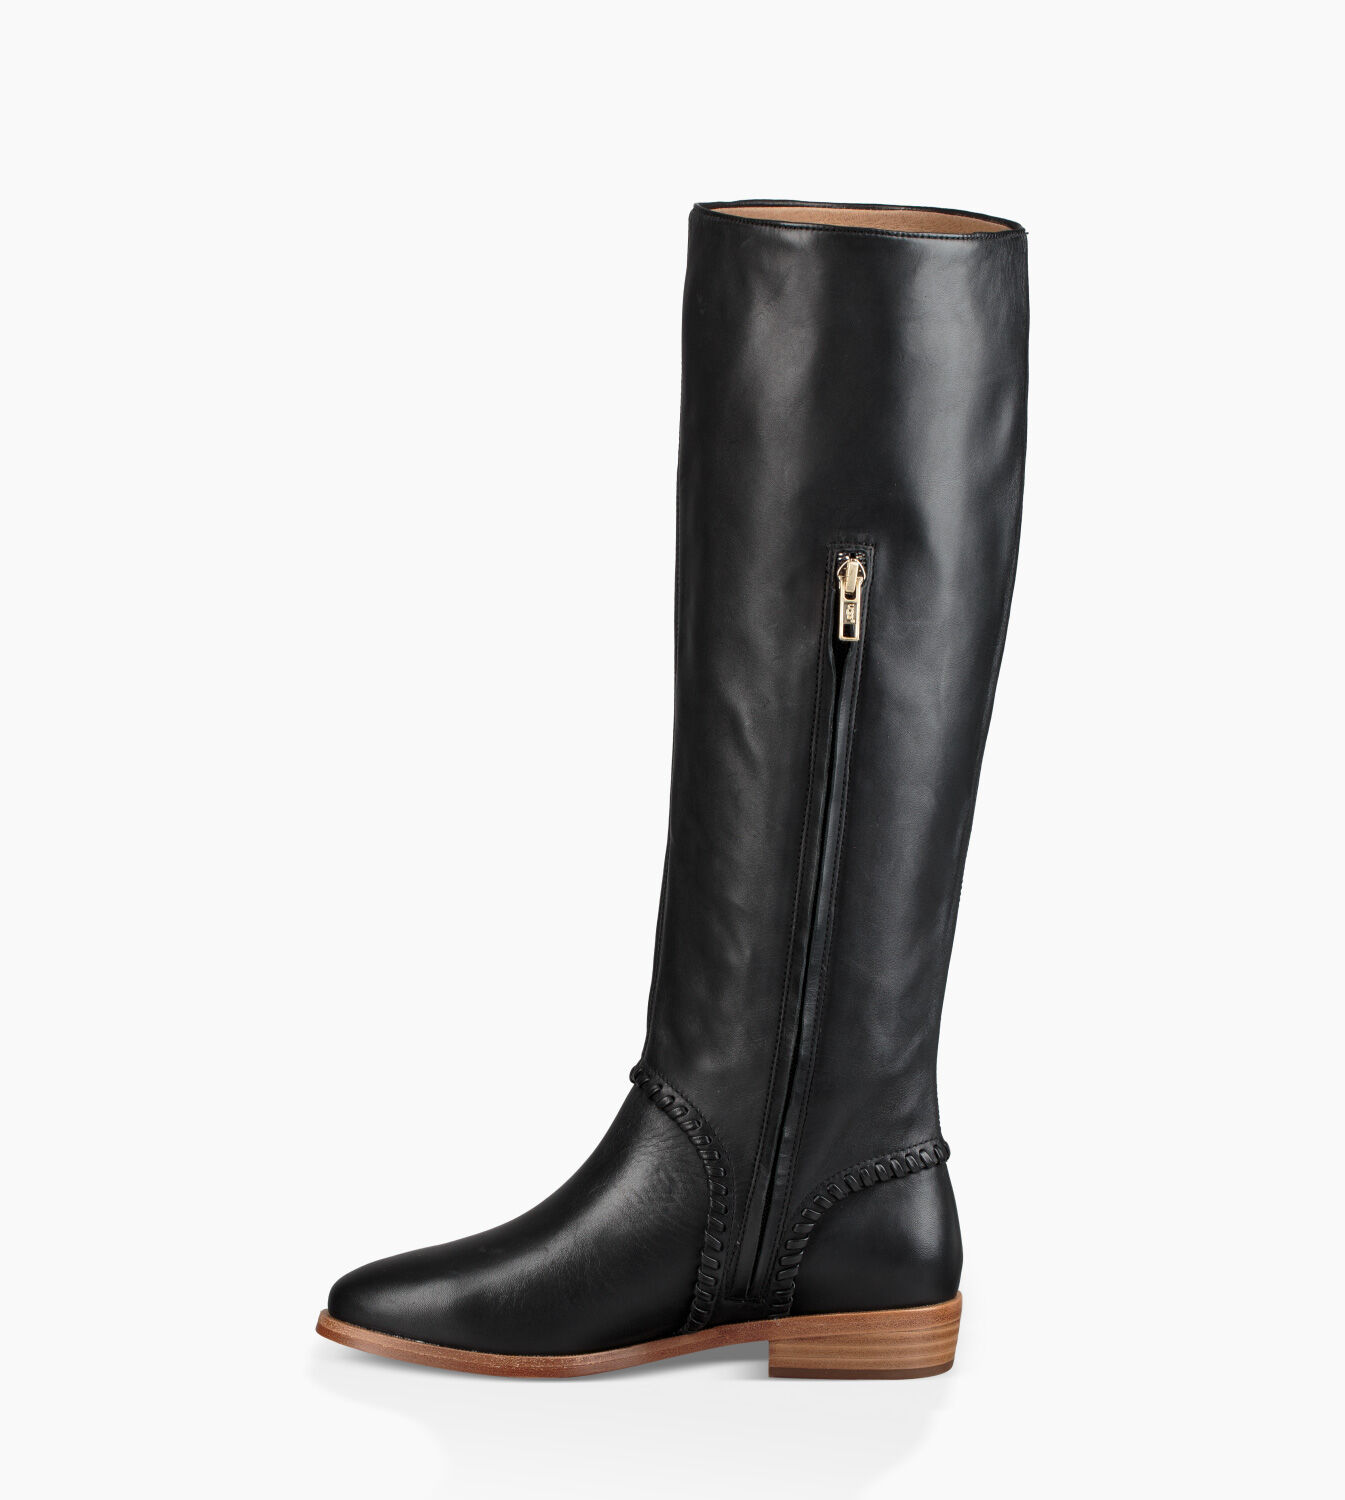 Outlet Good Selling UGG Gracen Whipstitch Flat Boots Outlet For Cheap For Cheap Price Cheap Sale Nicekicks Mst91saKF